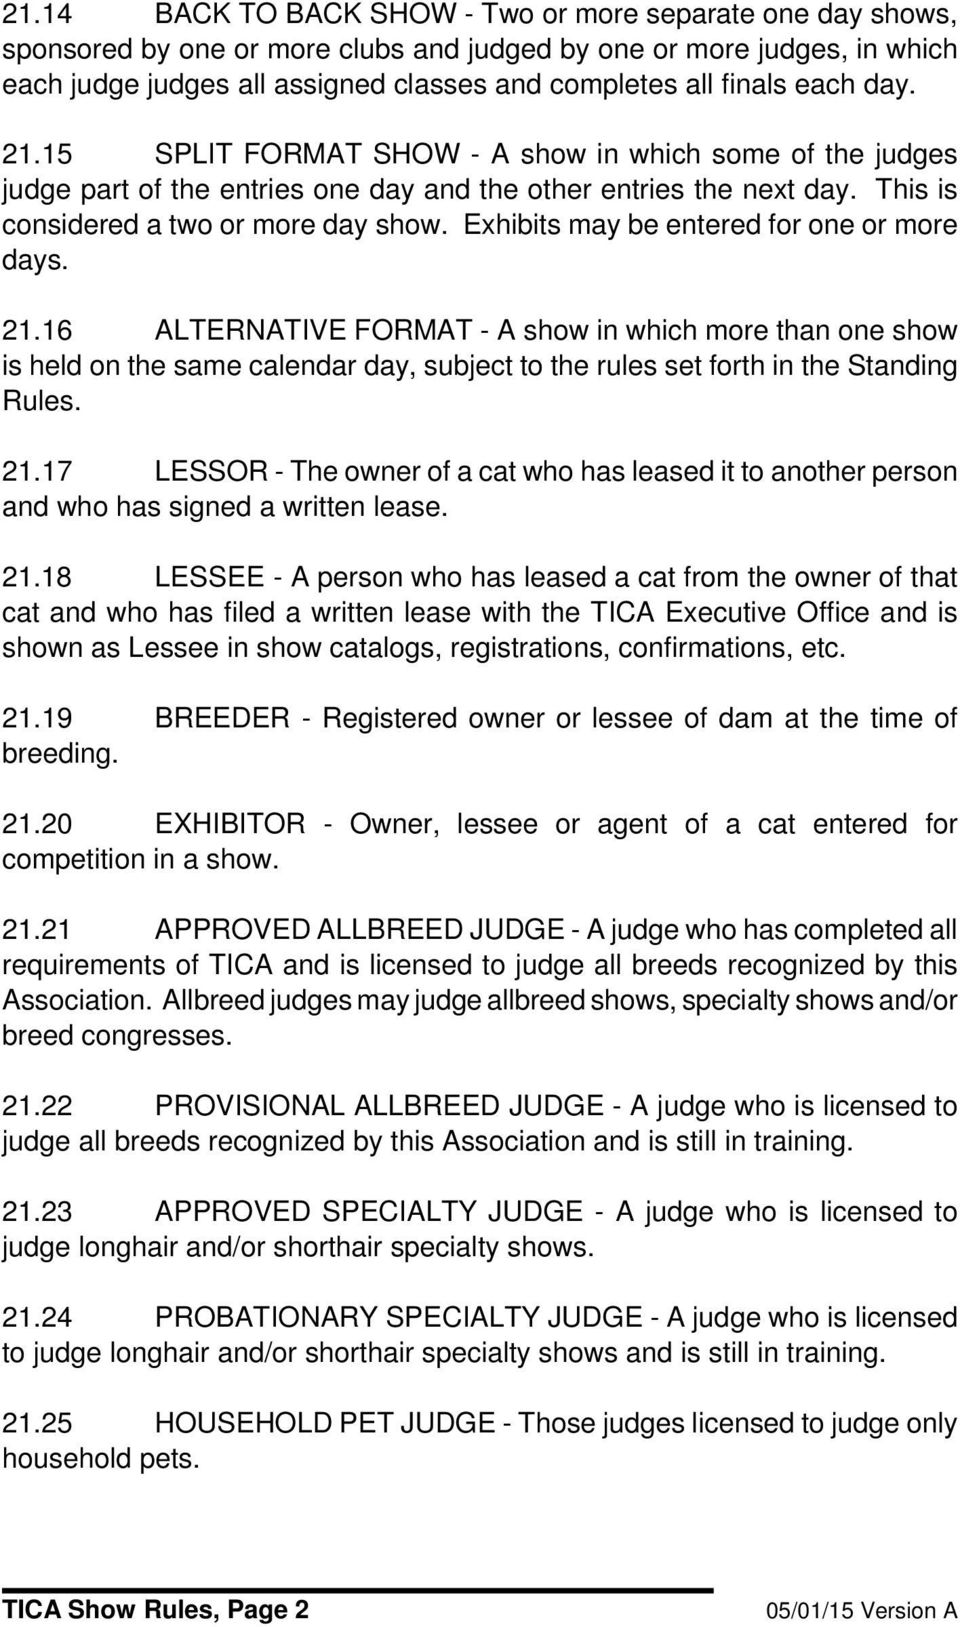 Exhibits may be entered for one or more days. 21.16 ALTERNATIVE FORMAT - A show in which more than one show is held on the same calendar day, subject to the rules set forth in the Standing Rules. 21.17 LESSOR - The owner of a cat who has leased it to another person and who has signed a written lease.